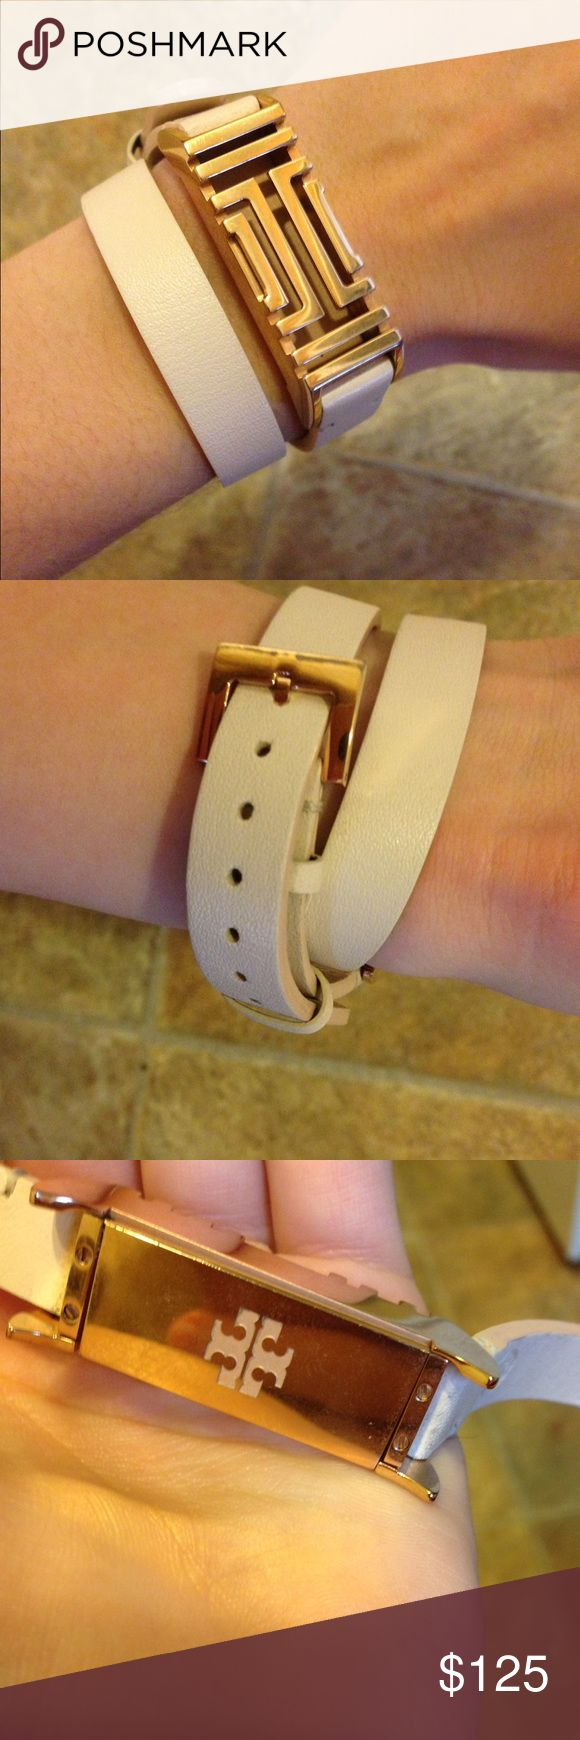 Gold Tory Burch Fitbit Bracelet Great condition! Adjustable band fits Fitbit flex. Price is firm. Tory Burch Jewelry Bracelets